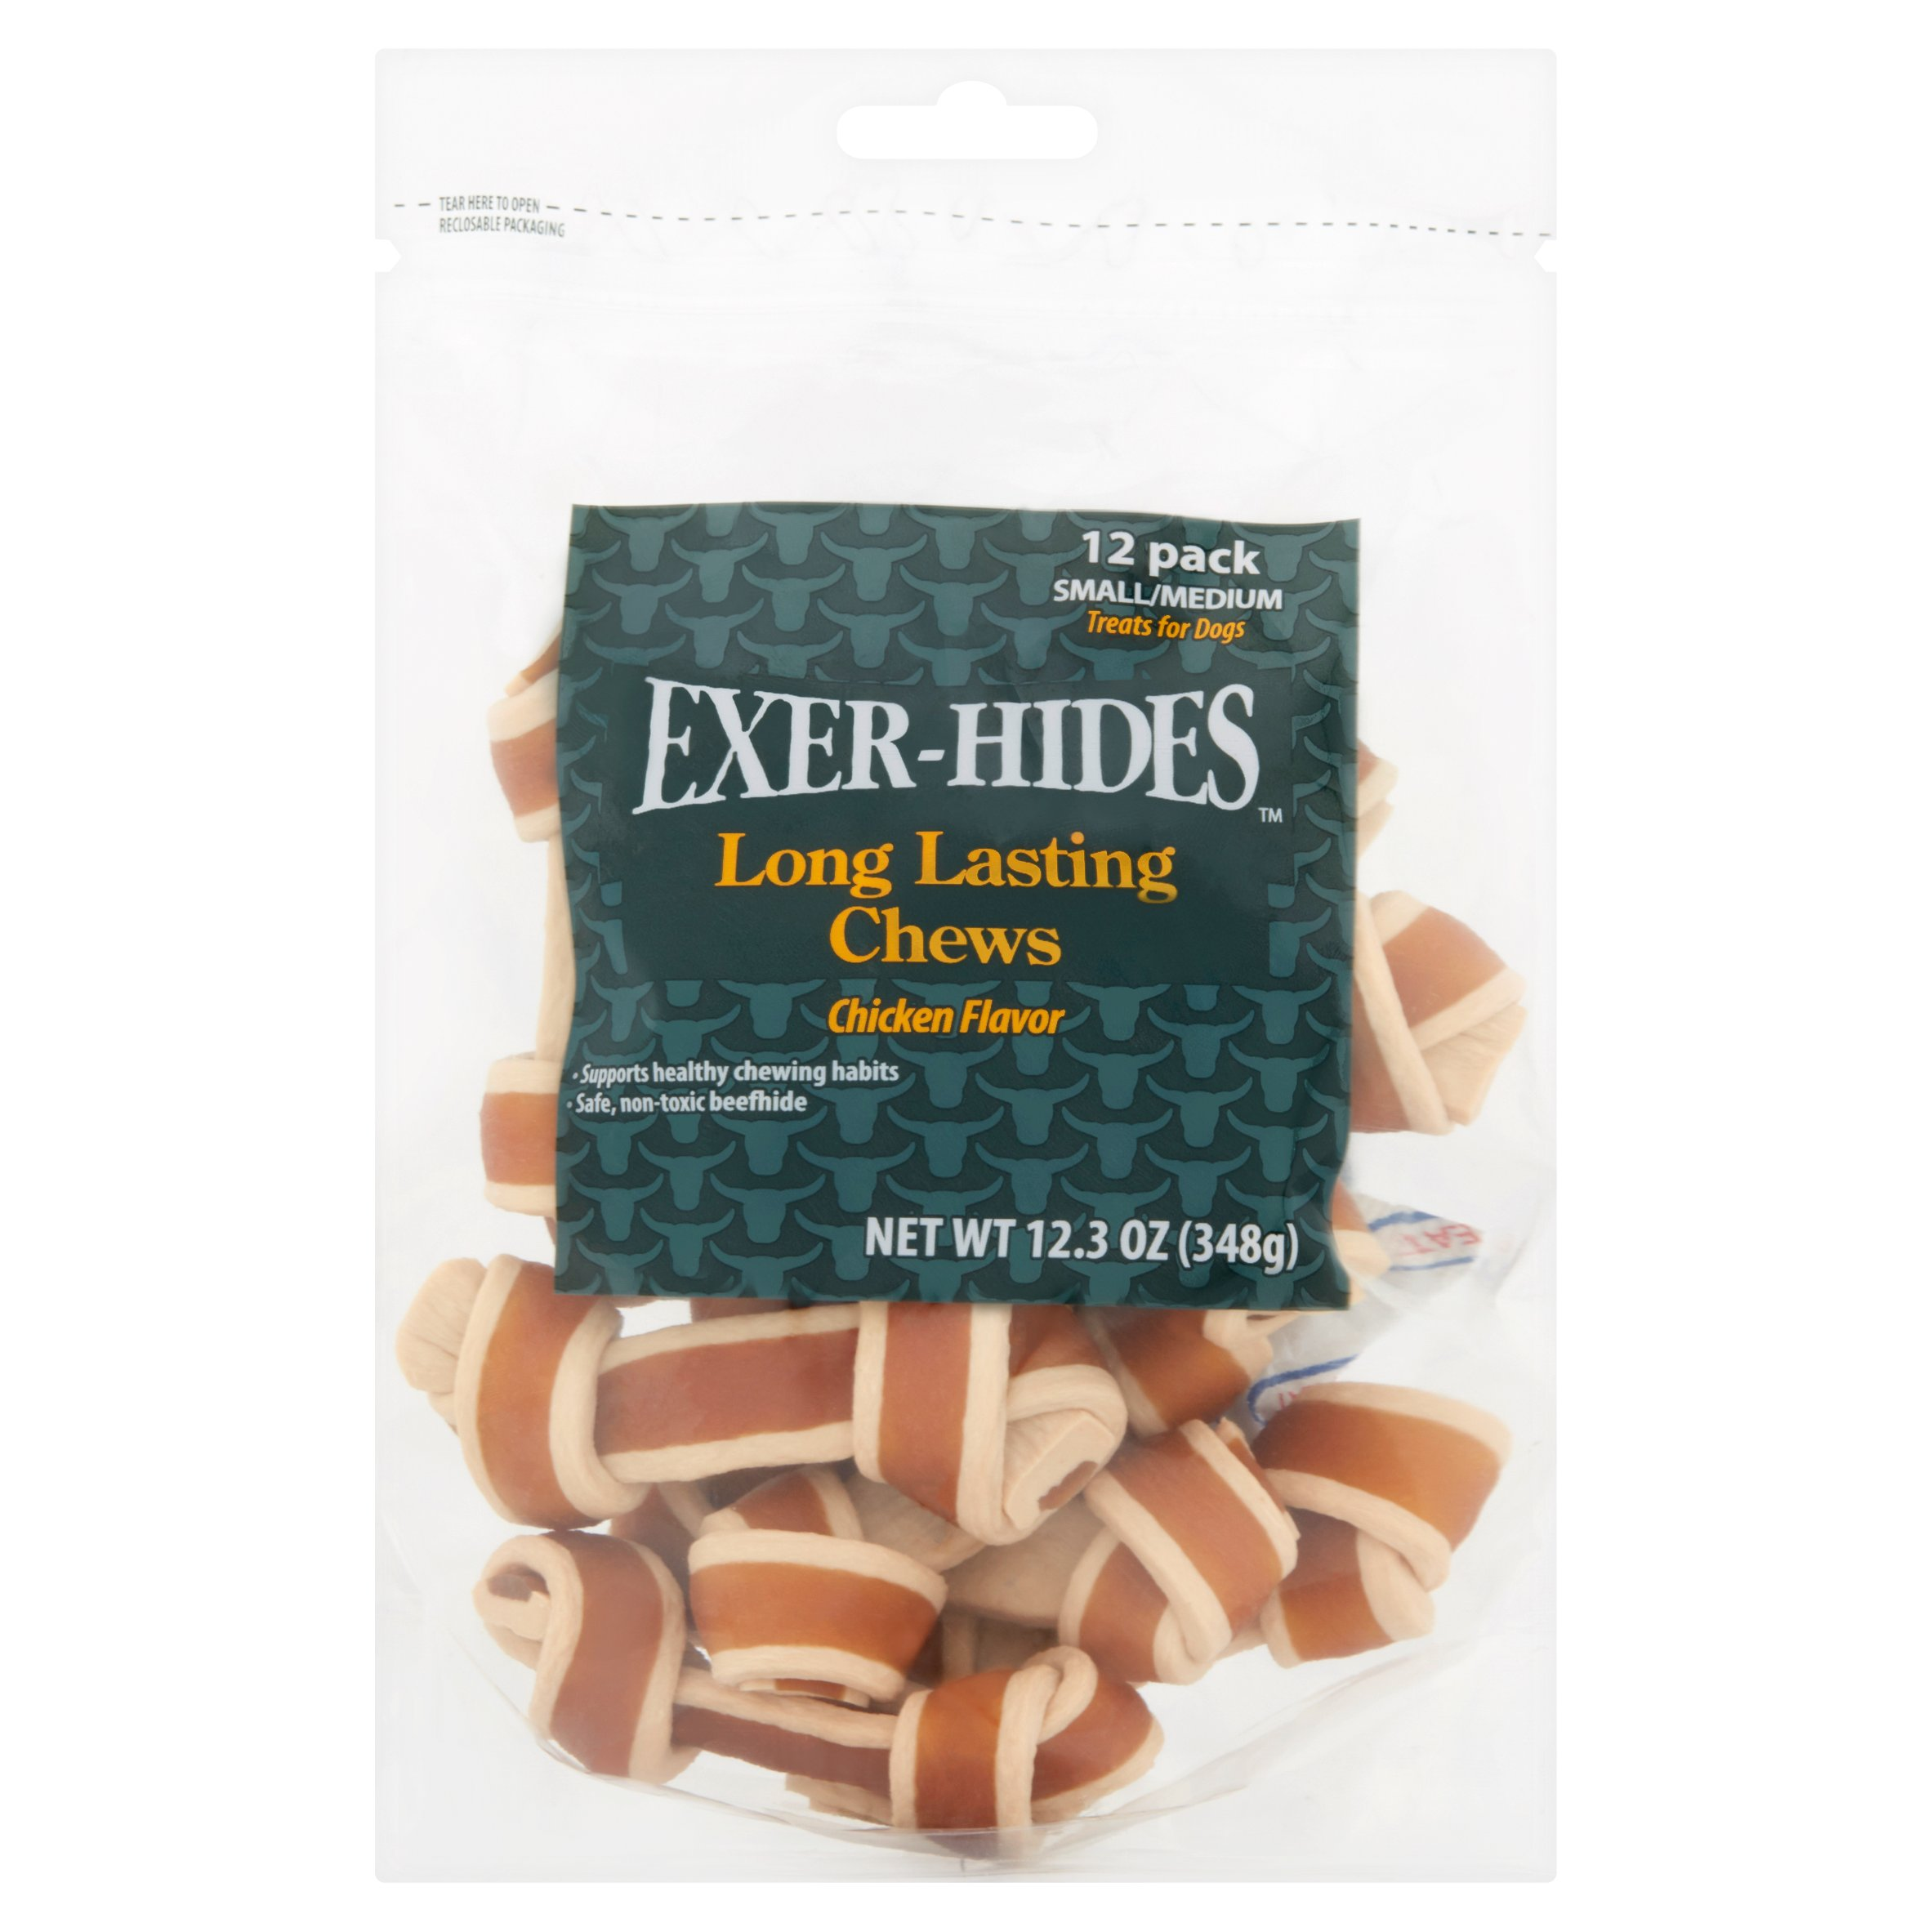 Exer-Hides Long Lasting Chews, Chicken Flavor, 12.3 oz, 12 Count